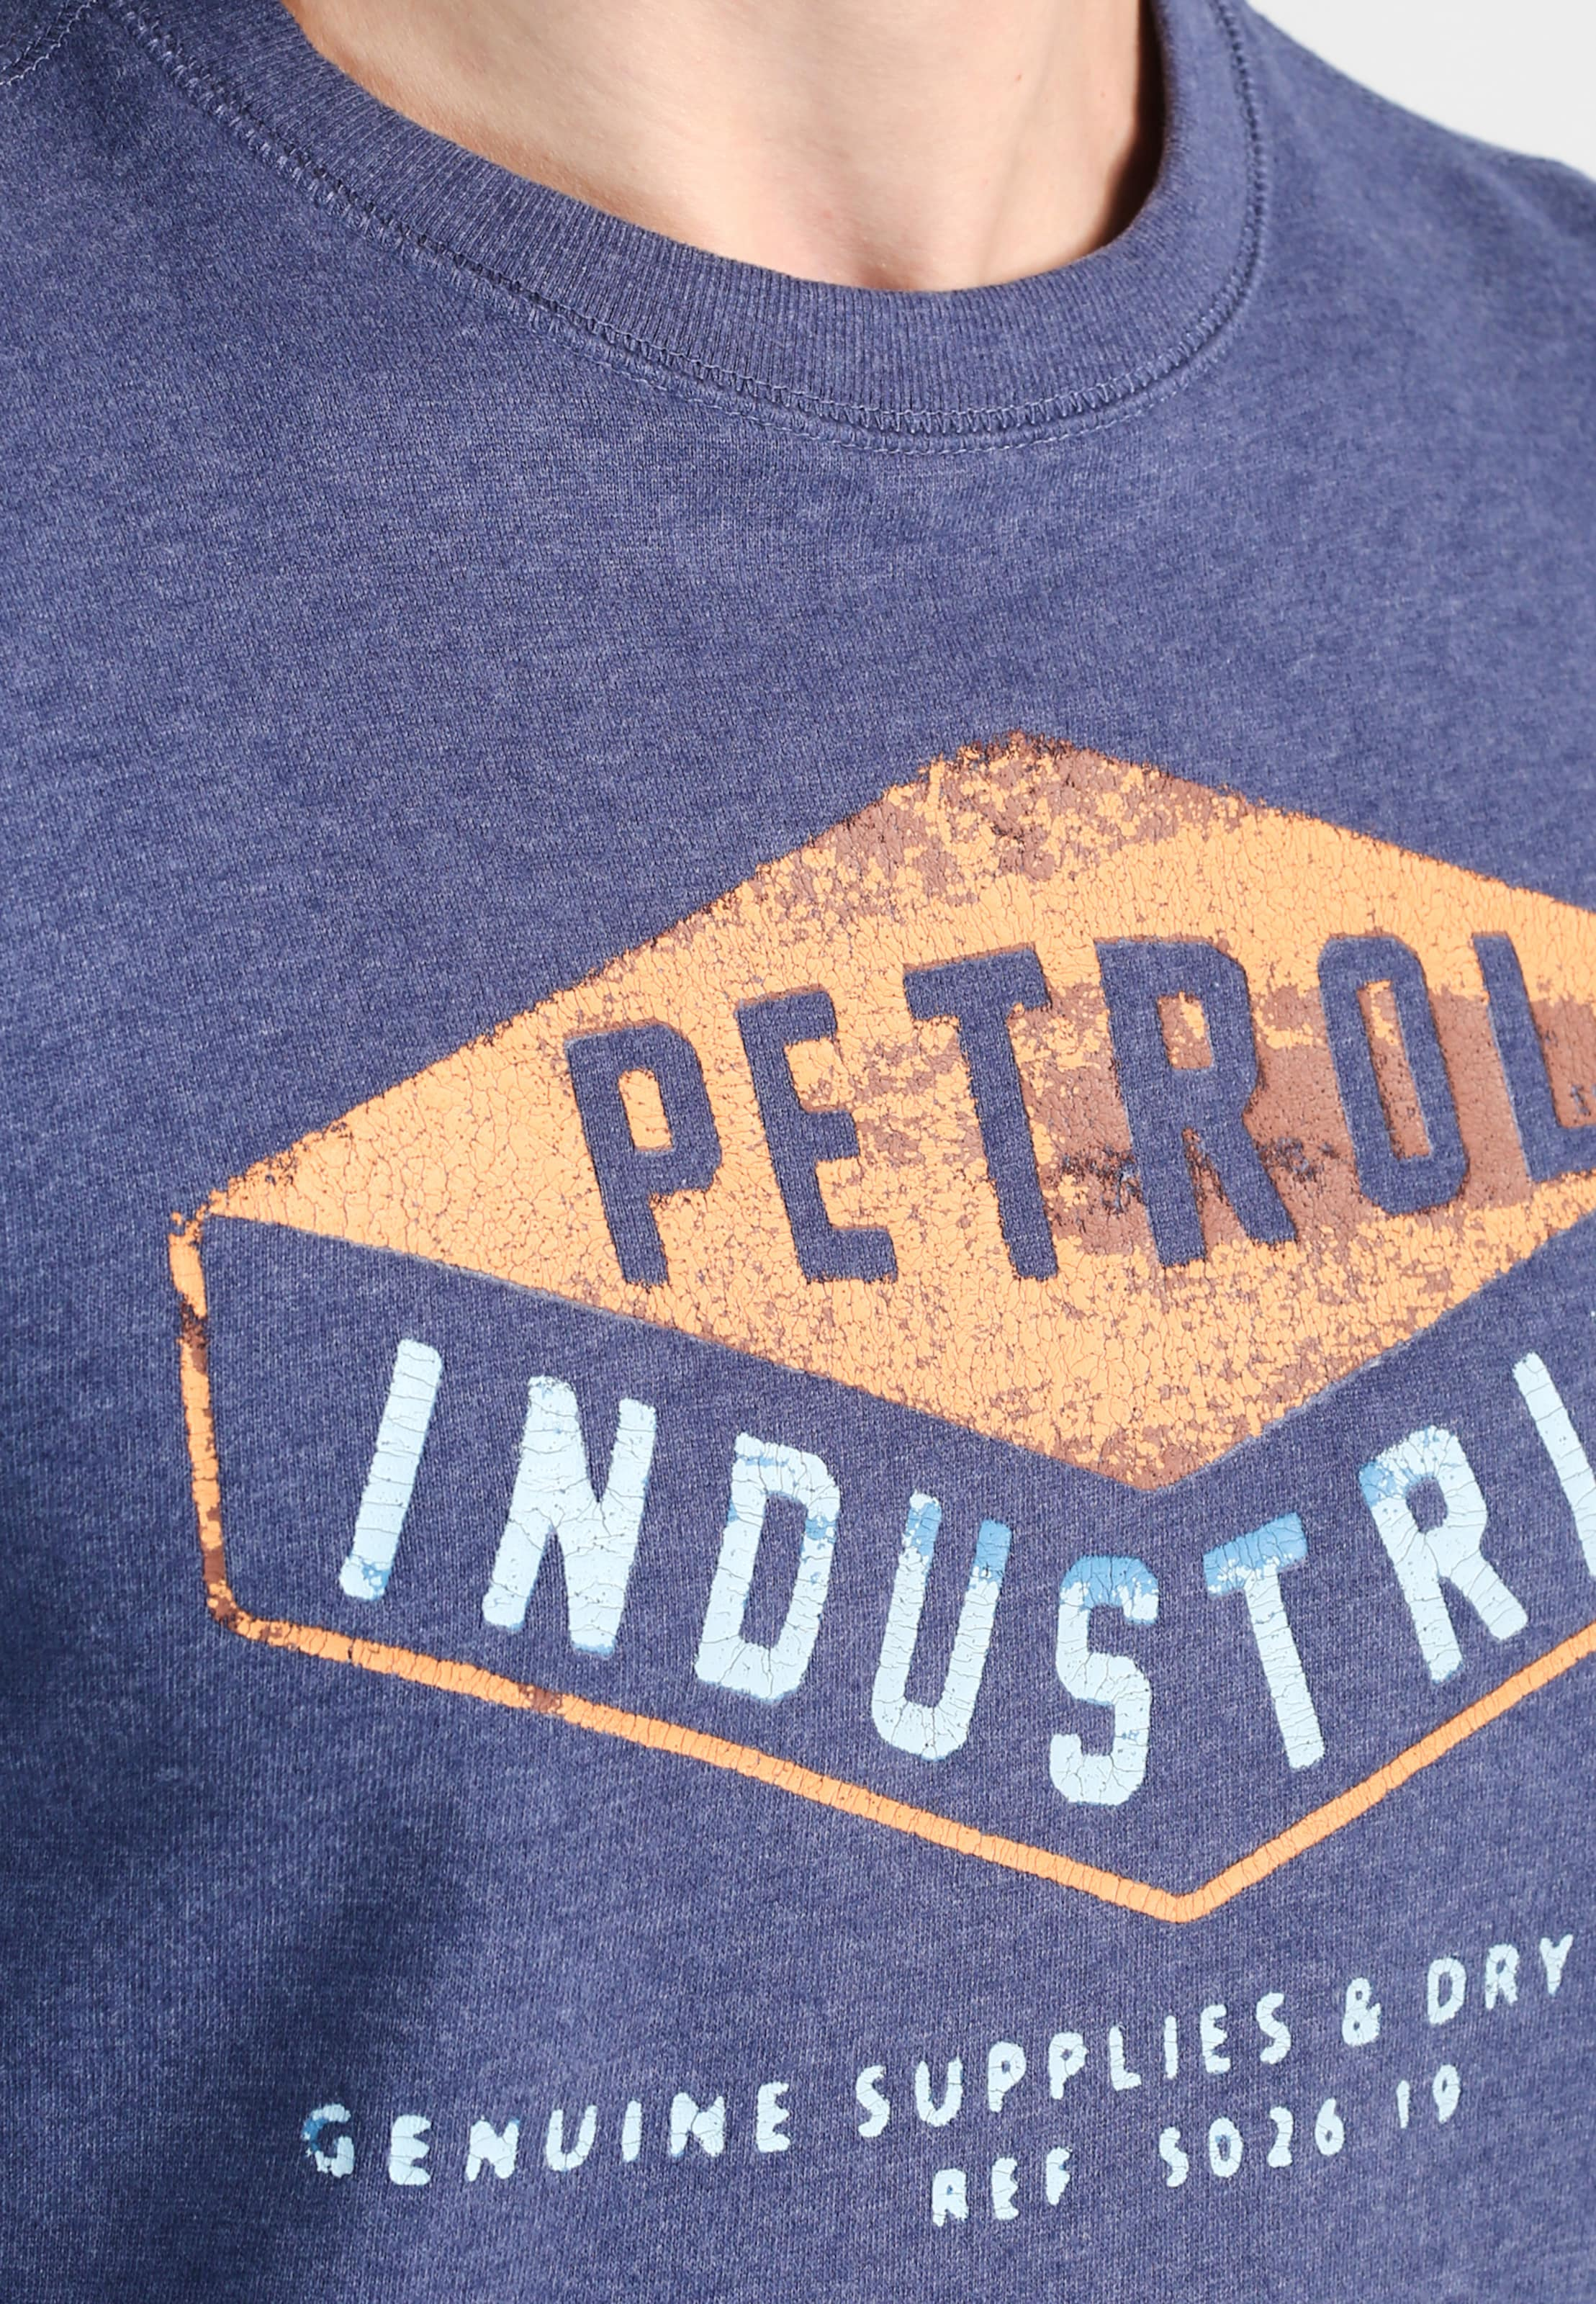 Petrol Industries Petrol Industries Sweatshirt Amazon Verkauf Online TxMOj5C